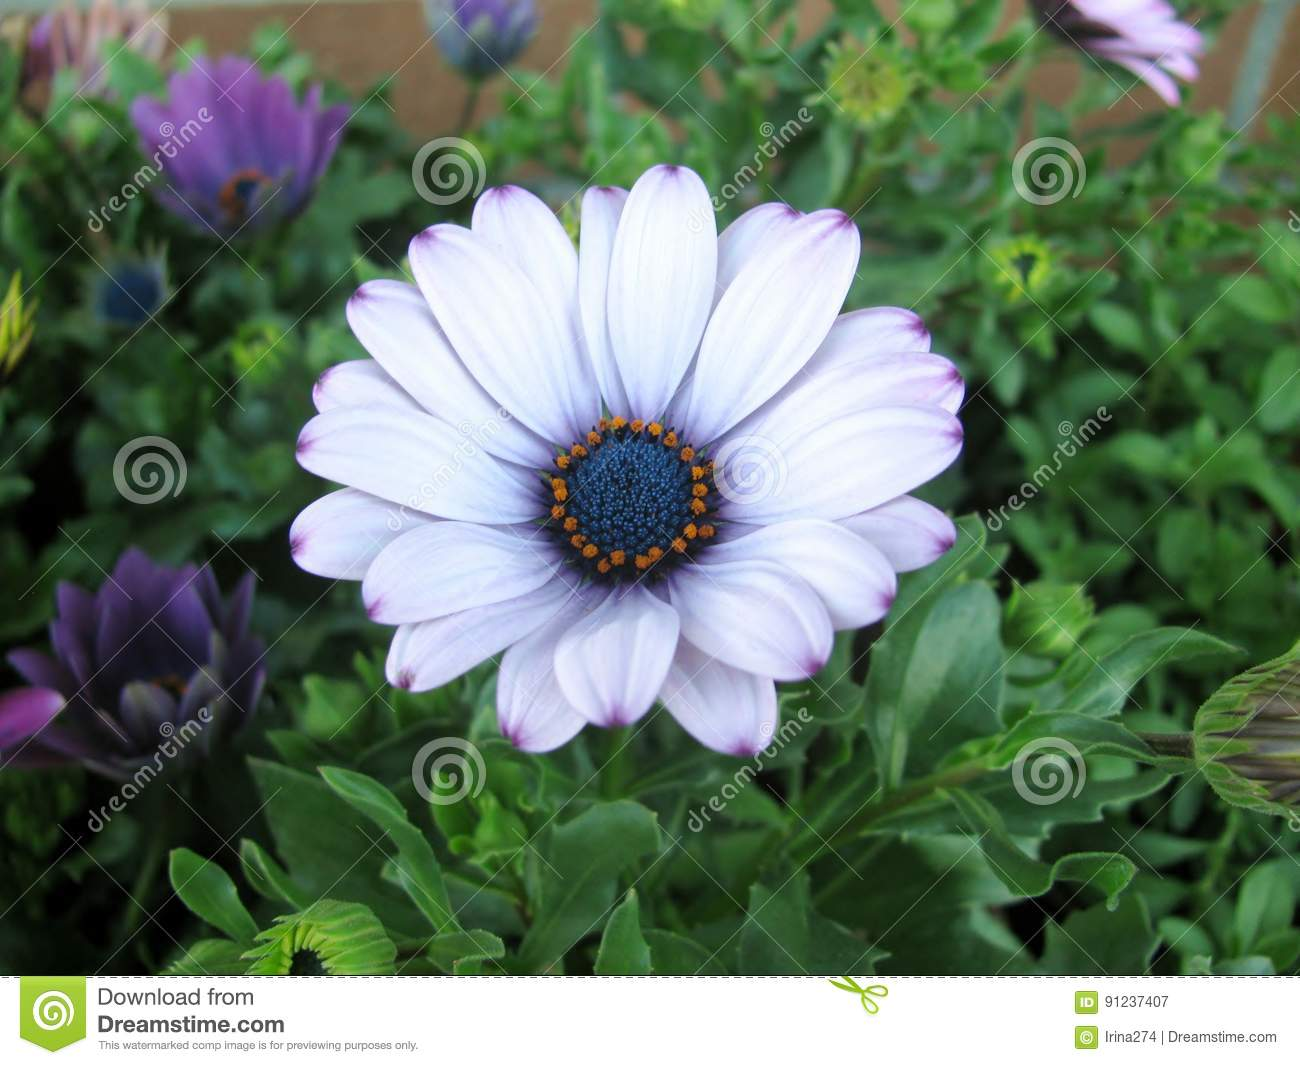 White and purple african daisy flowers. Osteospermum